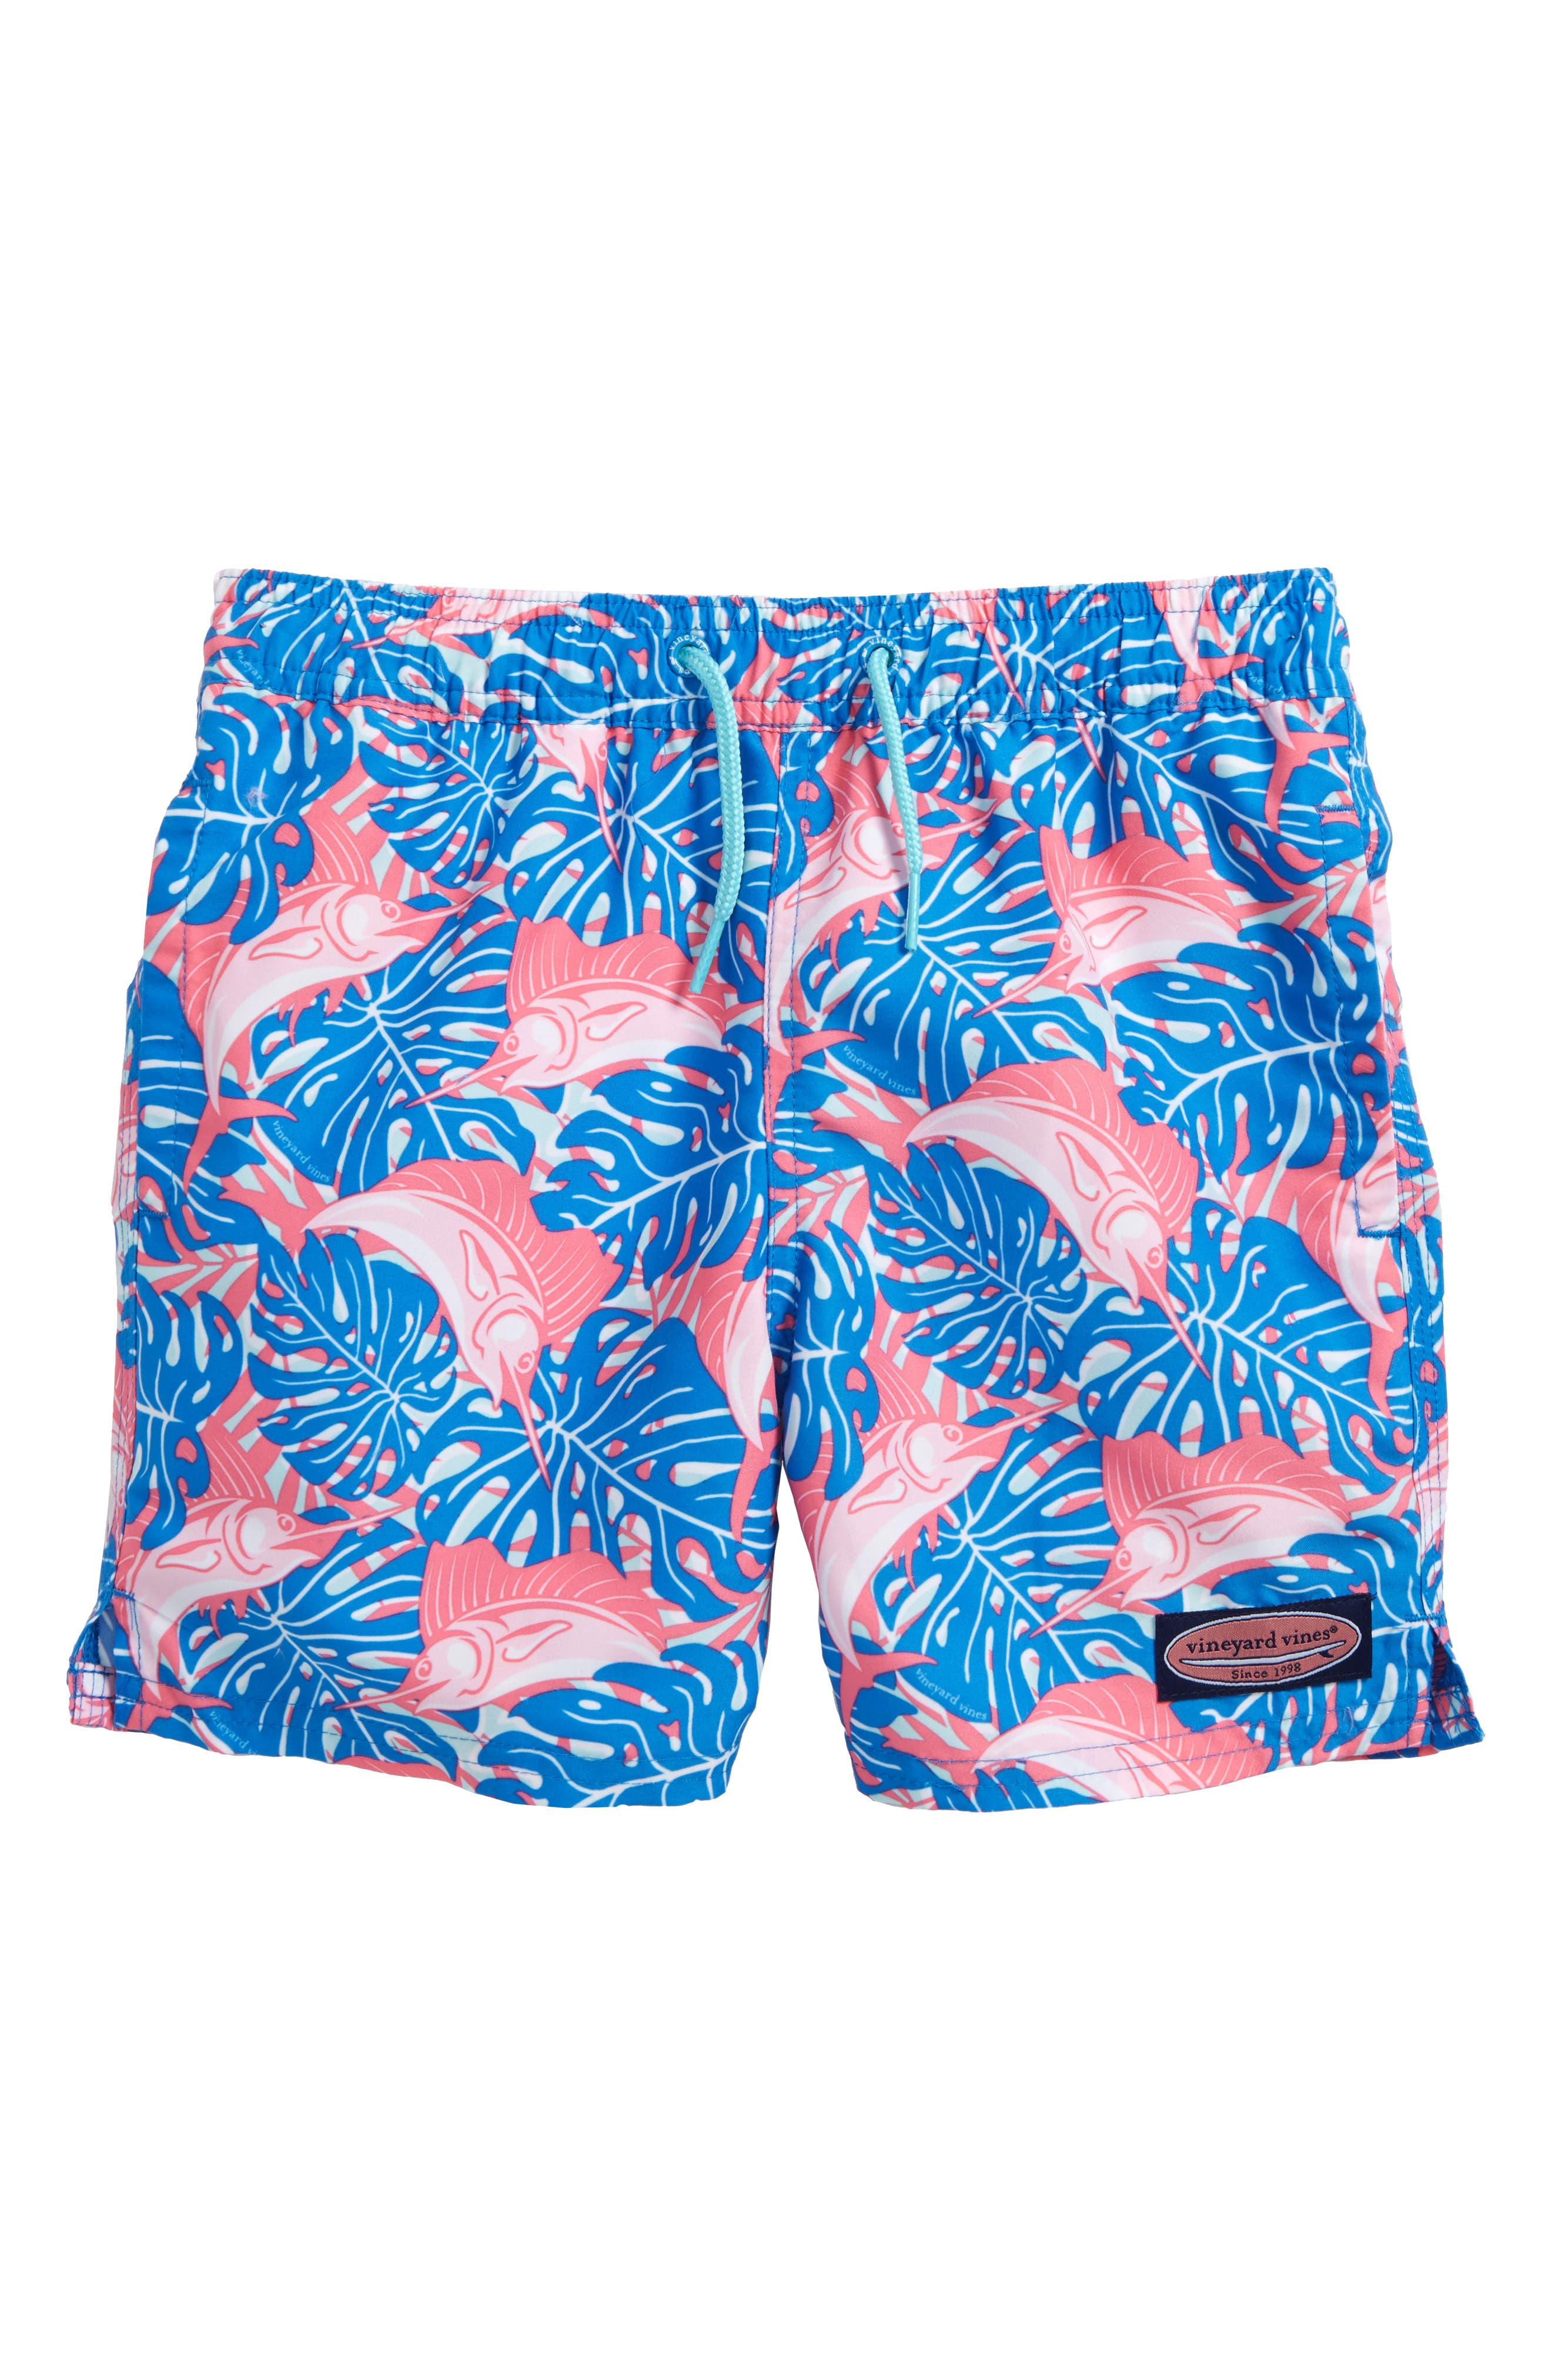 Chappy Sailfish & Leaves Swim Trunks,                         Main,                         color, 474